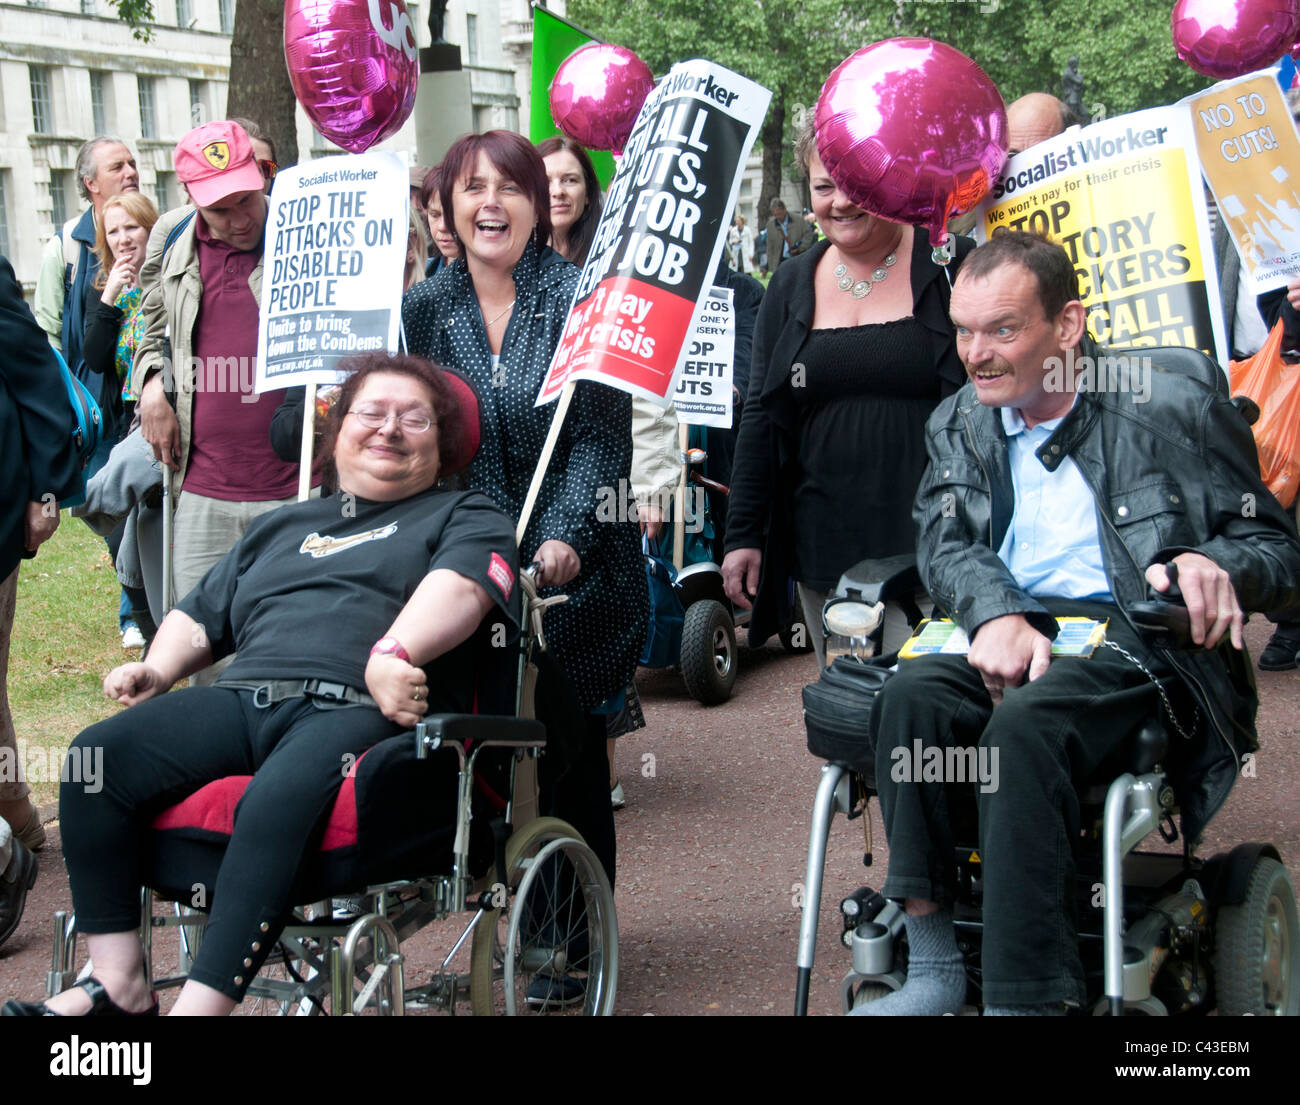 Westminster 11th May 2011. Hardest hit demonstration against government cuts to services to people with disabilities. - Stock Image